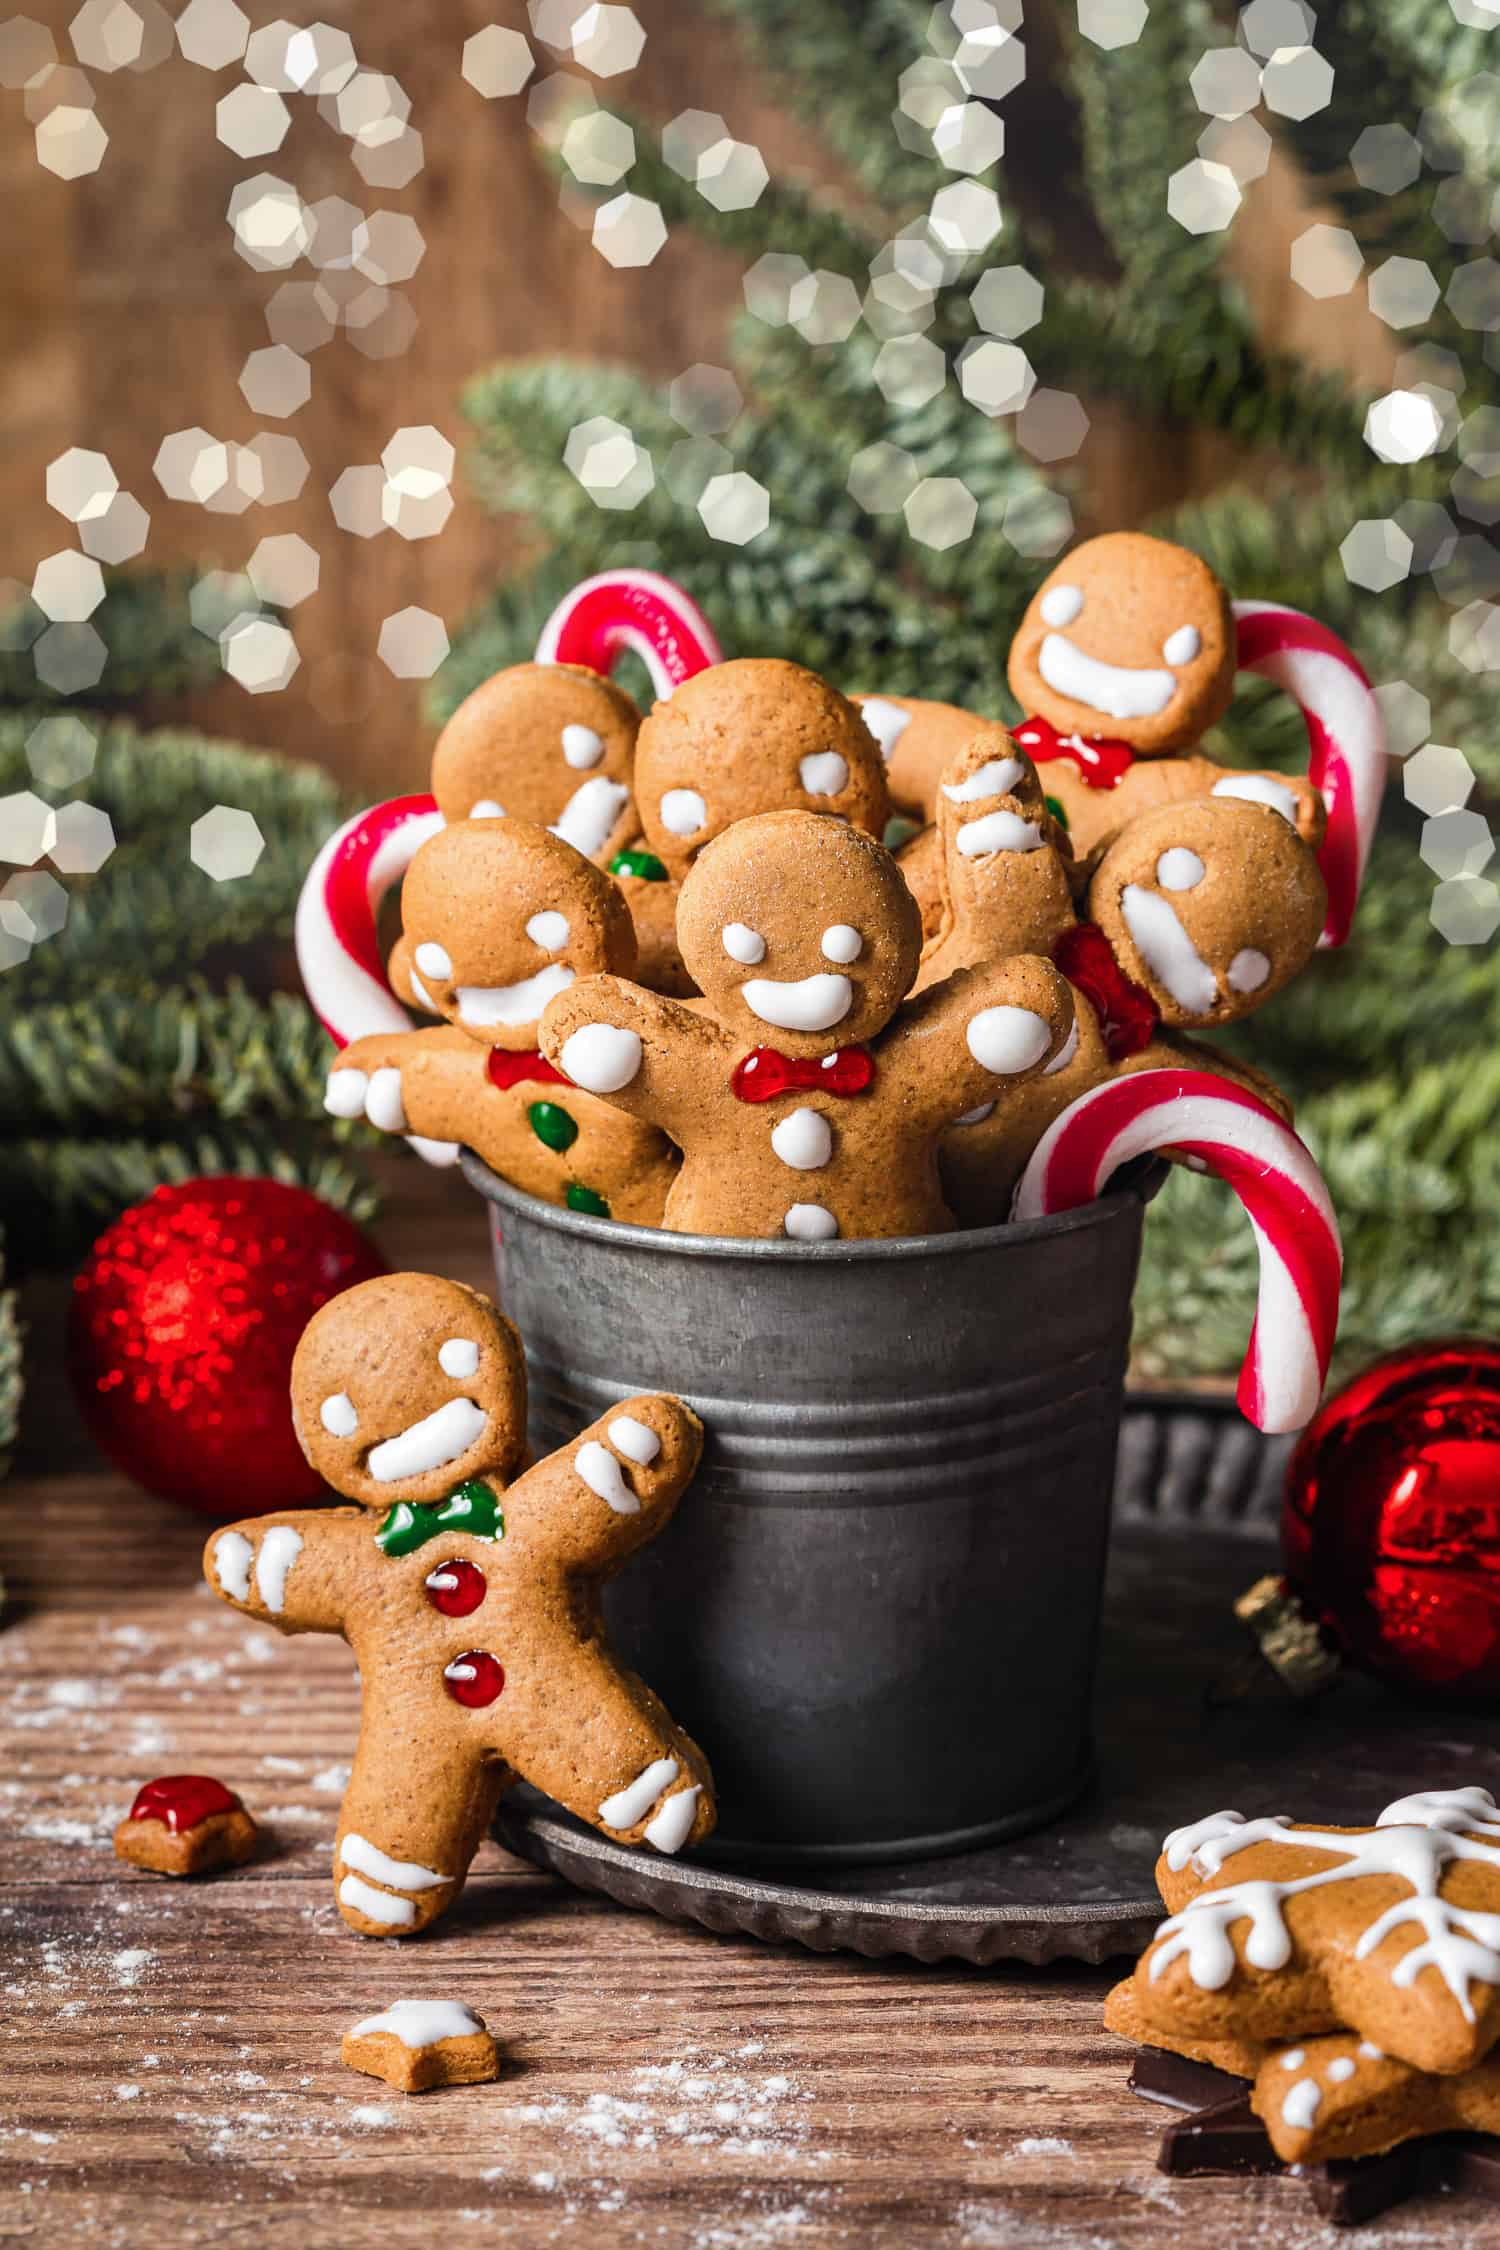 My Favorite Gingerbread Men Cookies | Kalejunkie